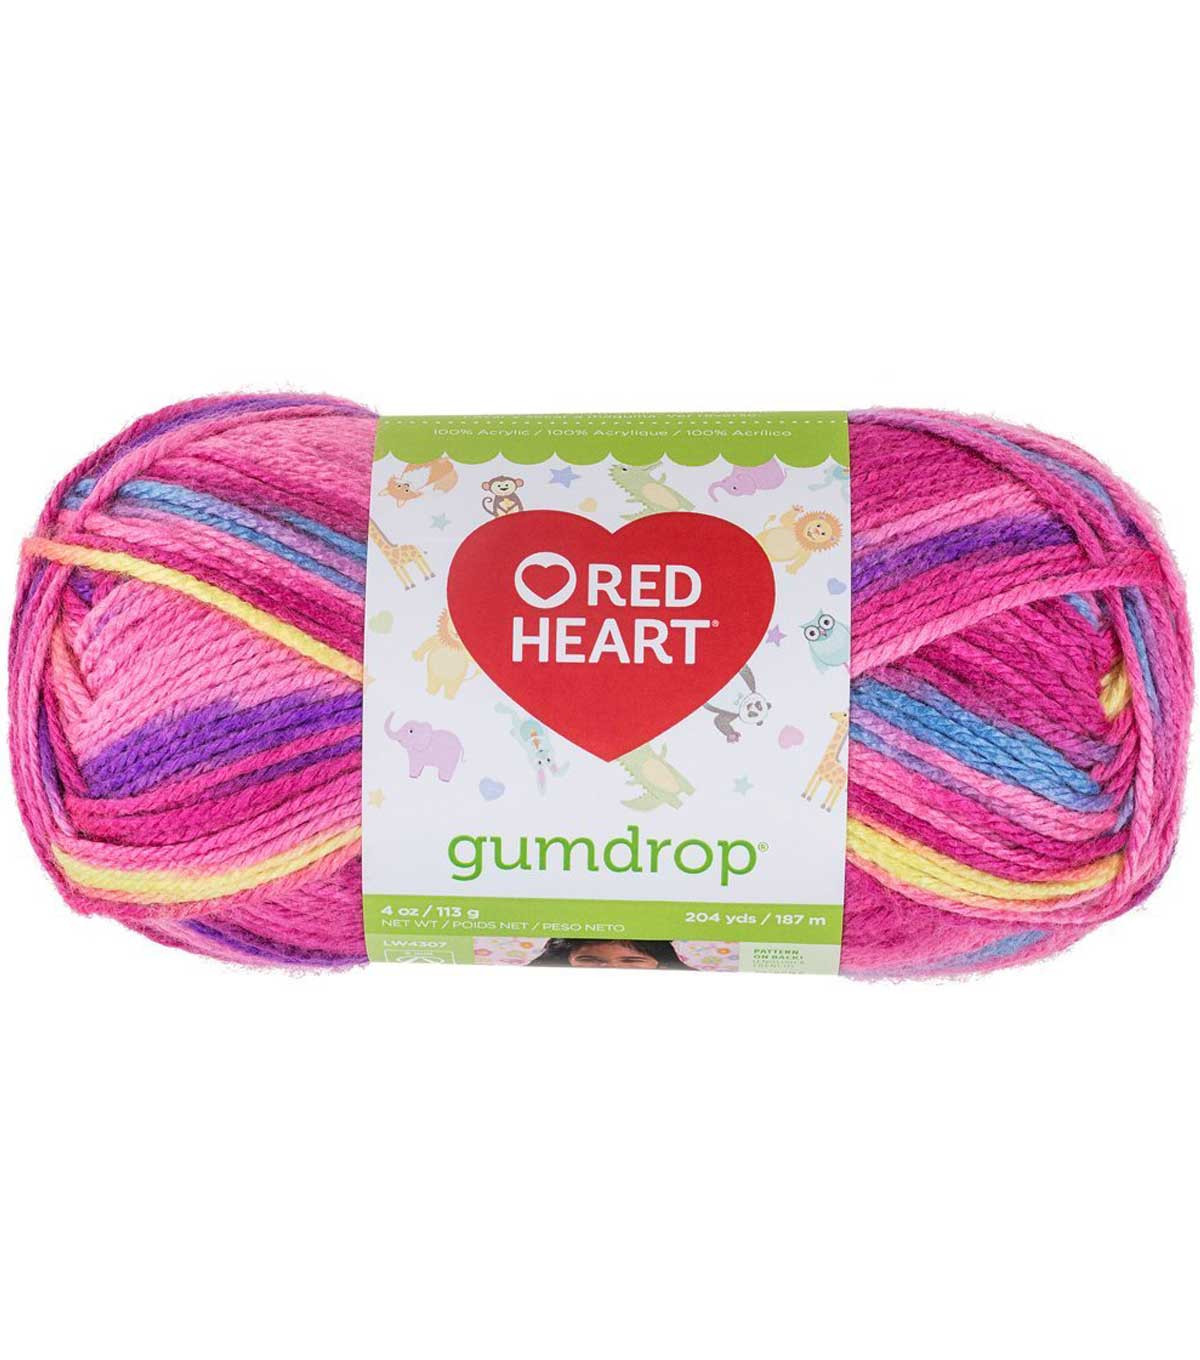 Luxury Red Heart Gumdrop Yarn Red Heart Yarn Com Of Top 20 Images Red Heart Yarn Com